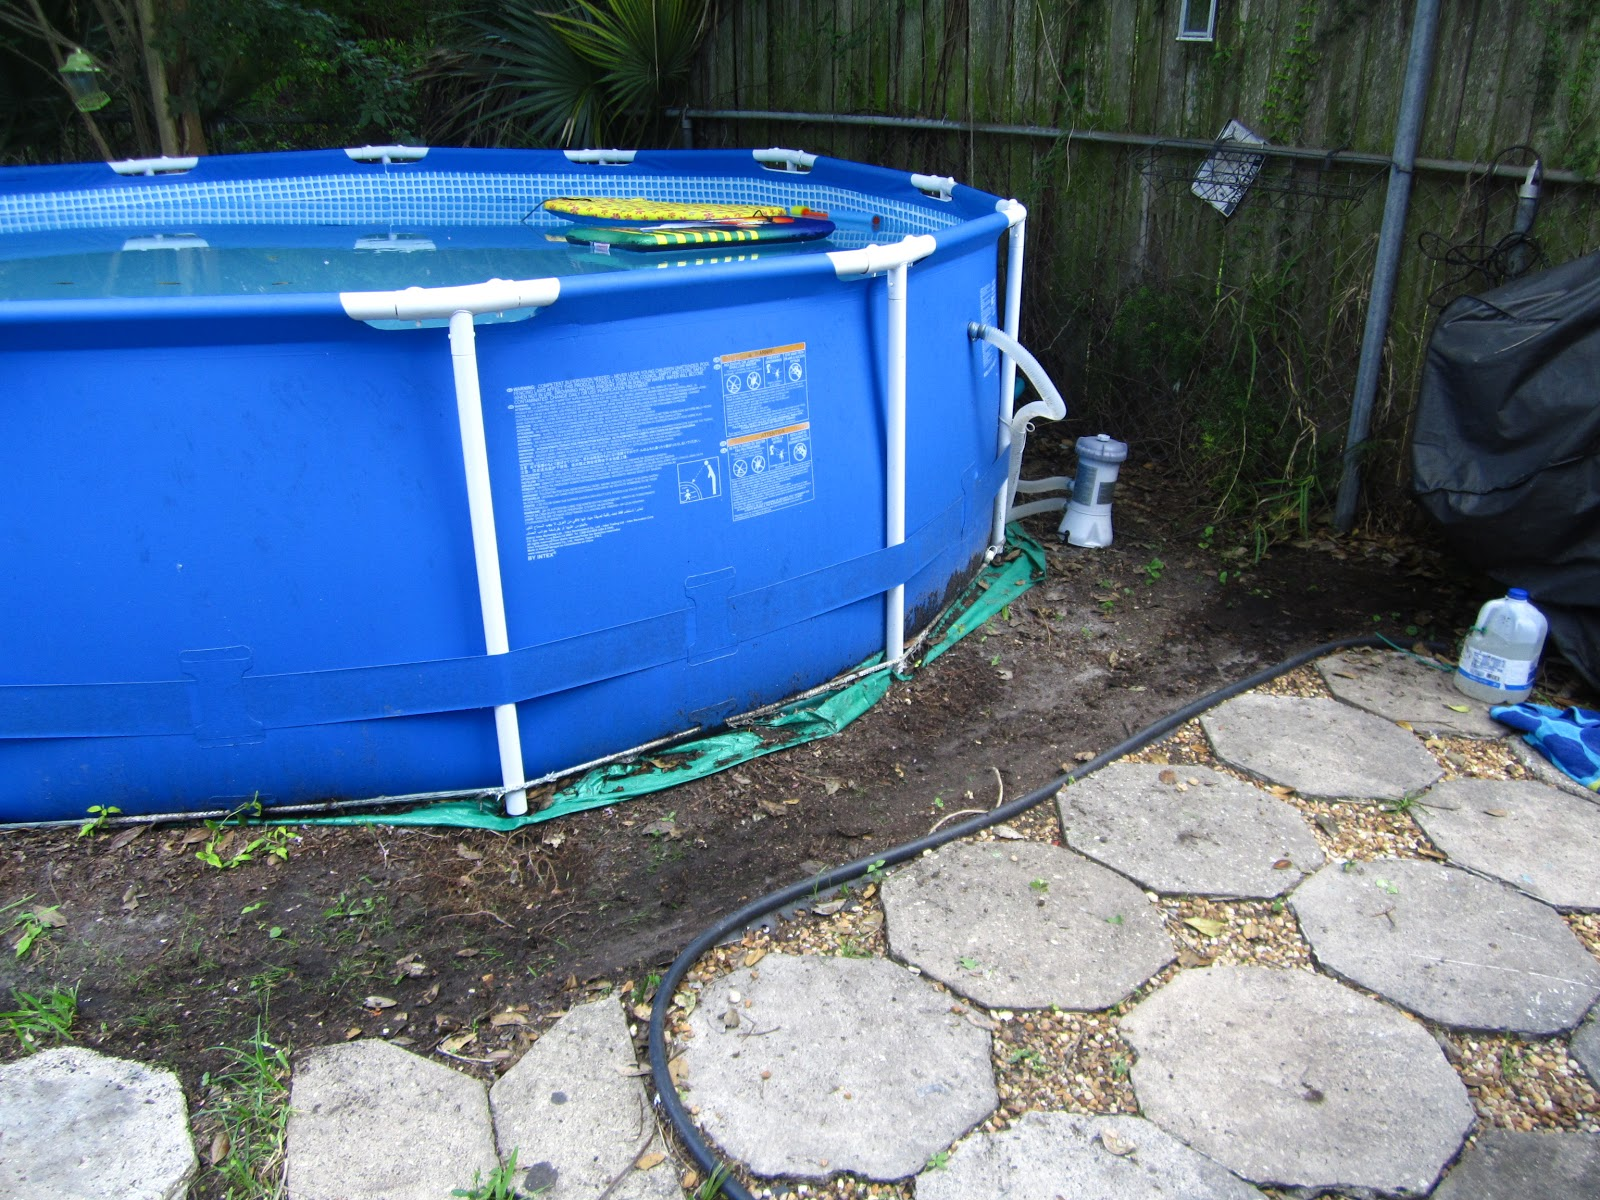 Above Ground Pool Removal Landscaping : Build a garden get landscaping ideas after above ground pool removal